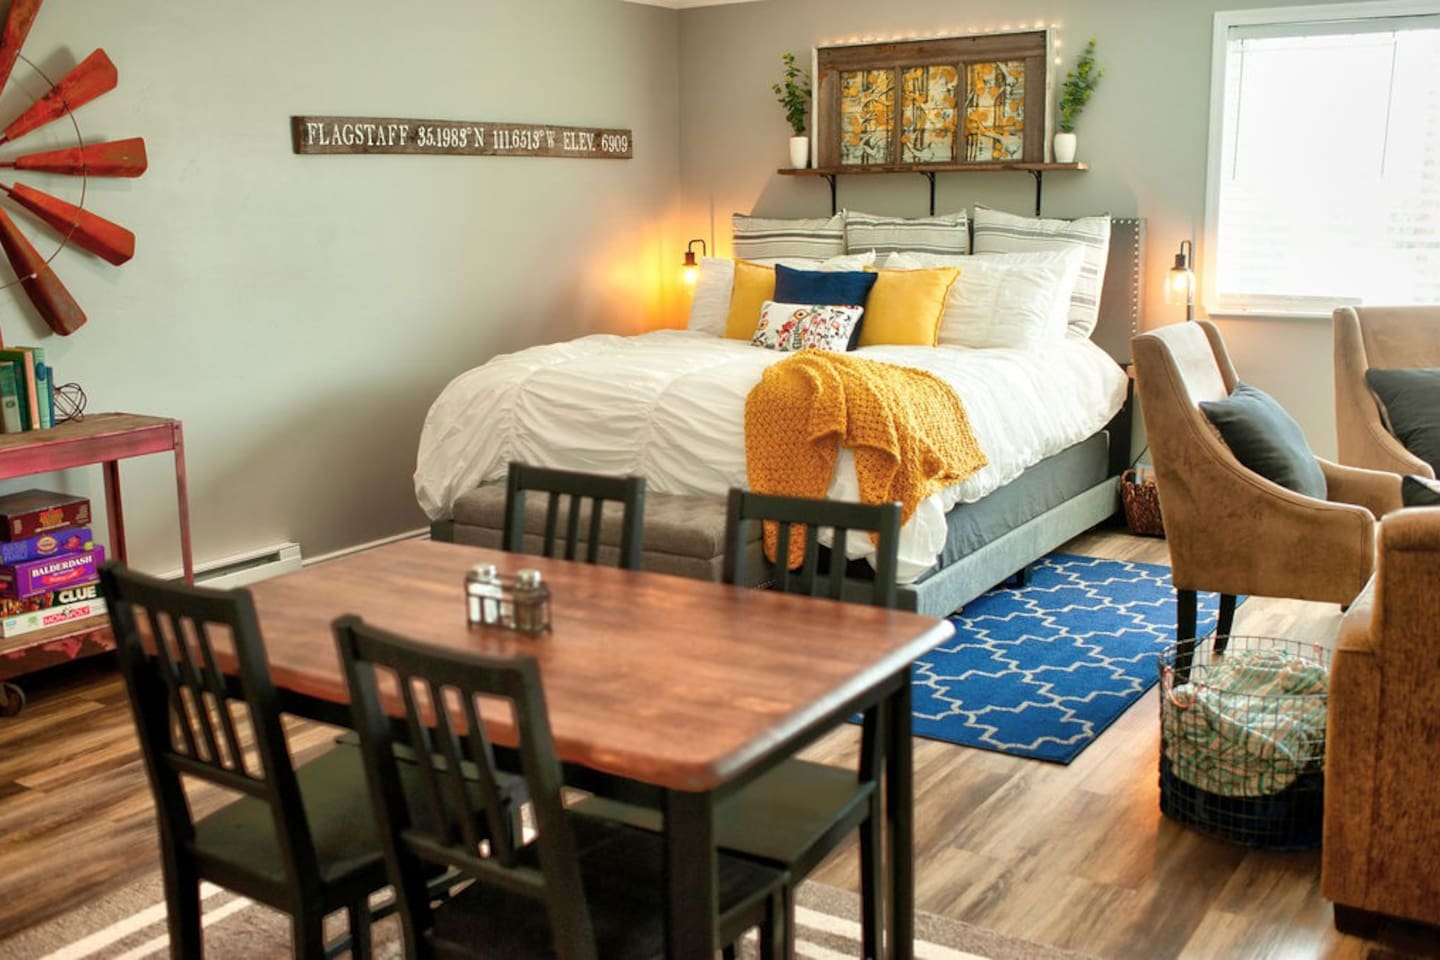 Molly's Mountain Retreat is a fully functional studio apartment nestled in beautiful Flagstaff, Arizona.